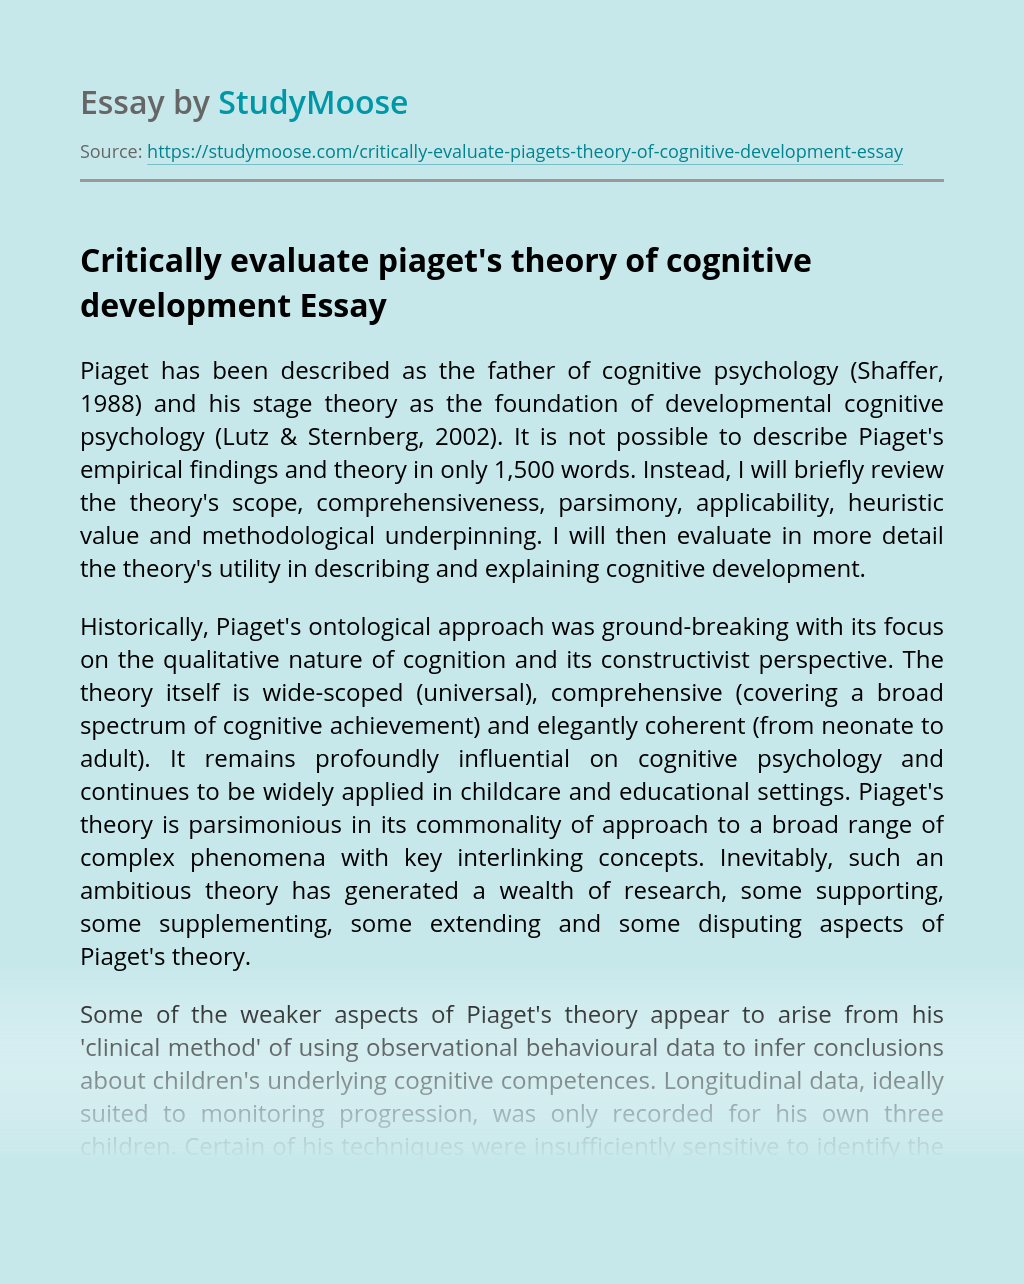 Critically evaluate piaget's theory of cognitive development